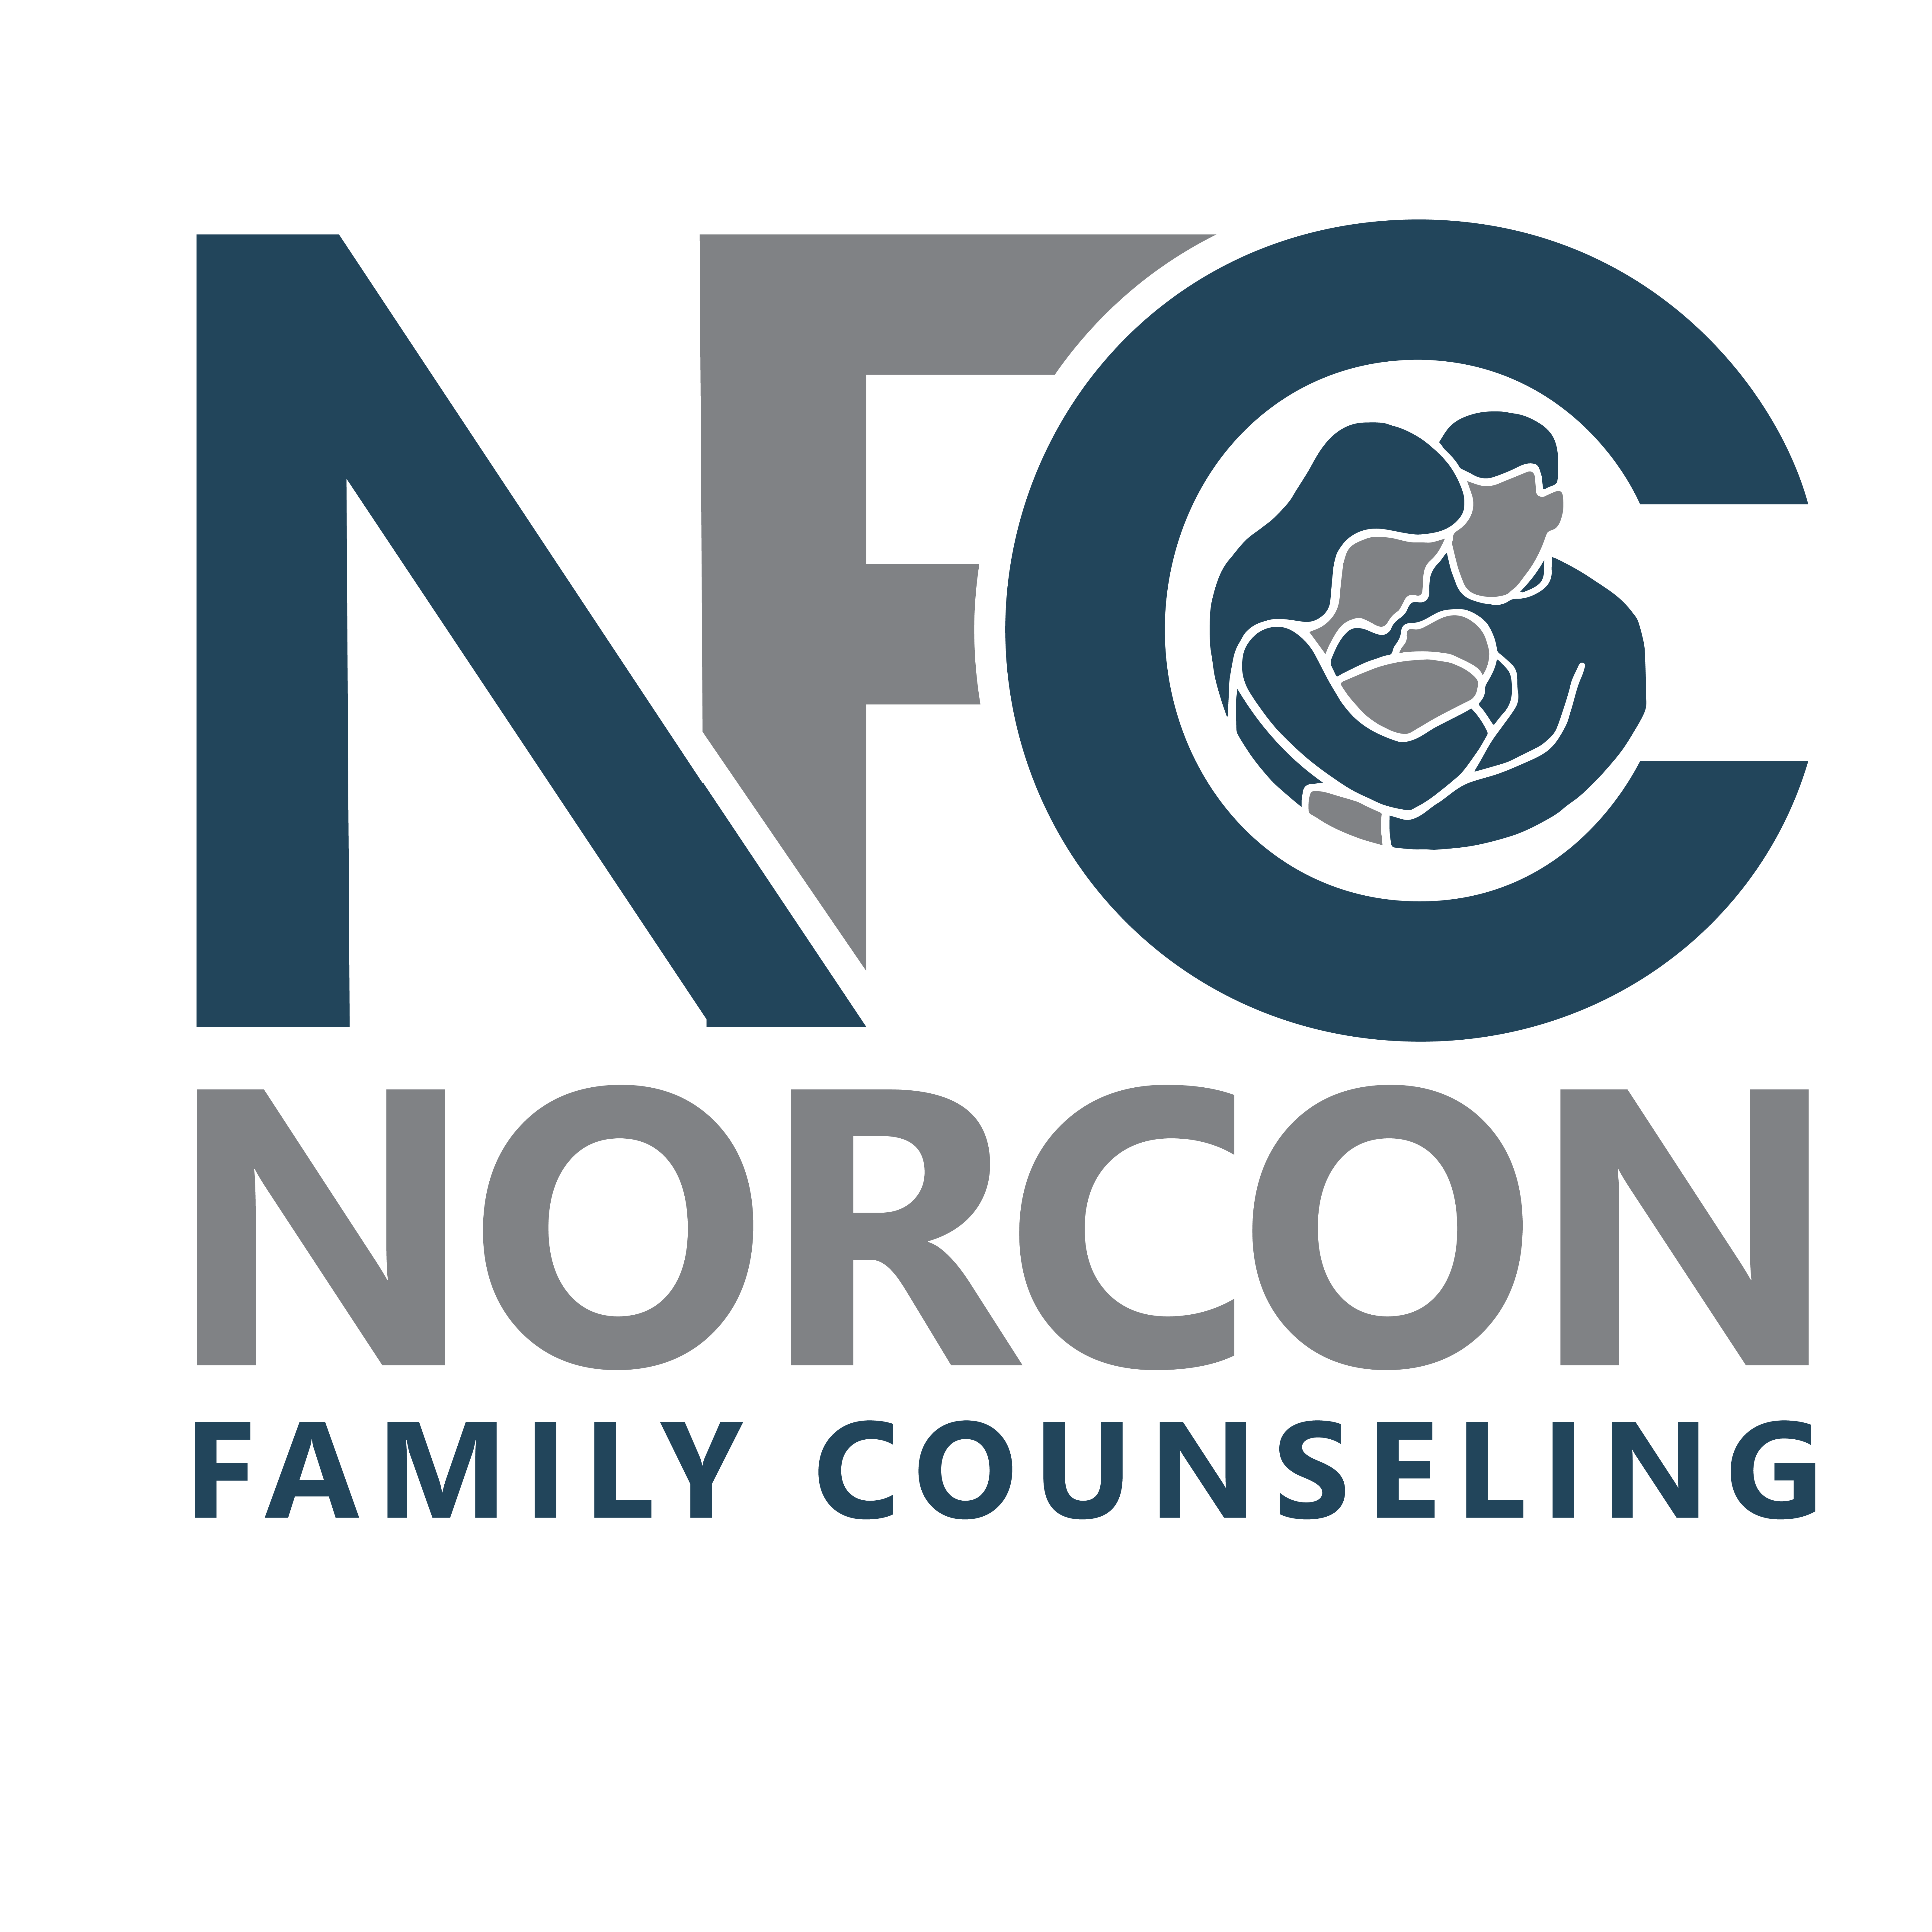 Norcon Family Counseling